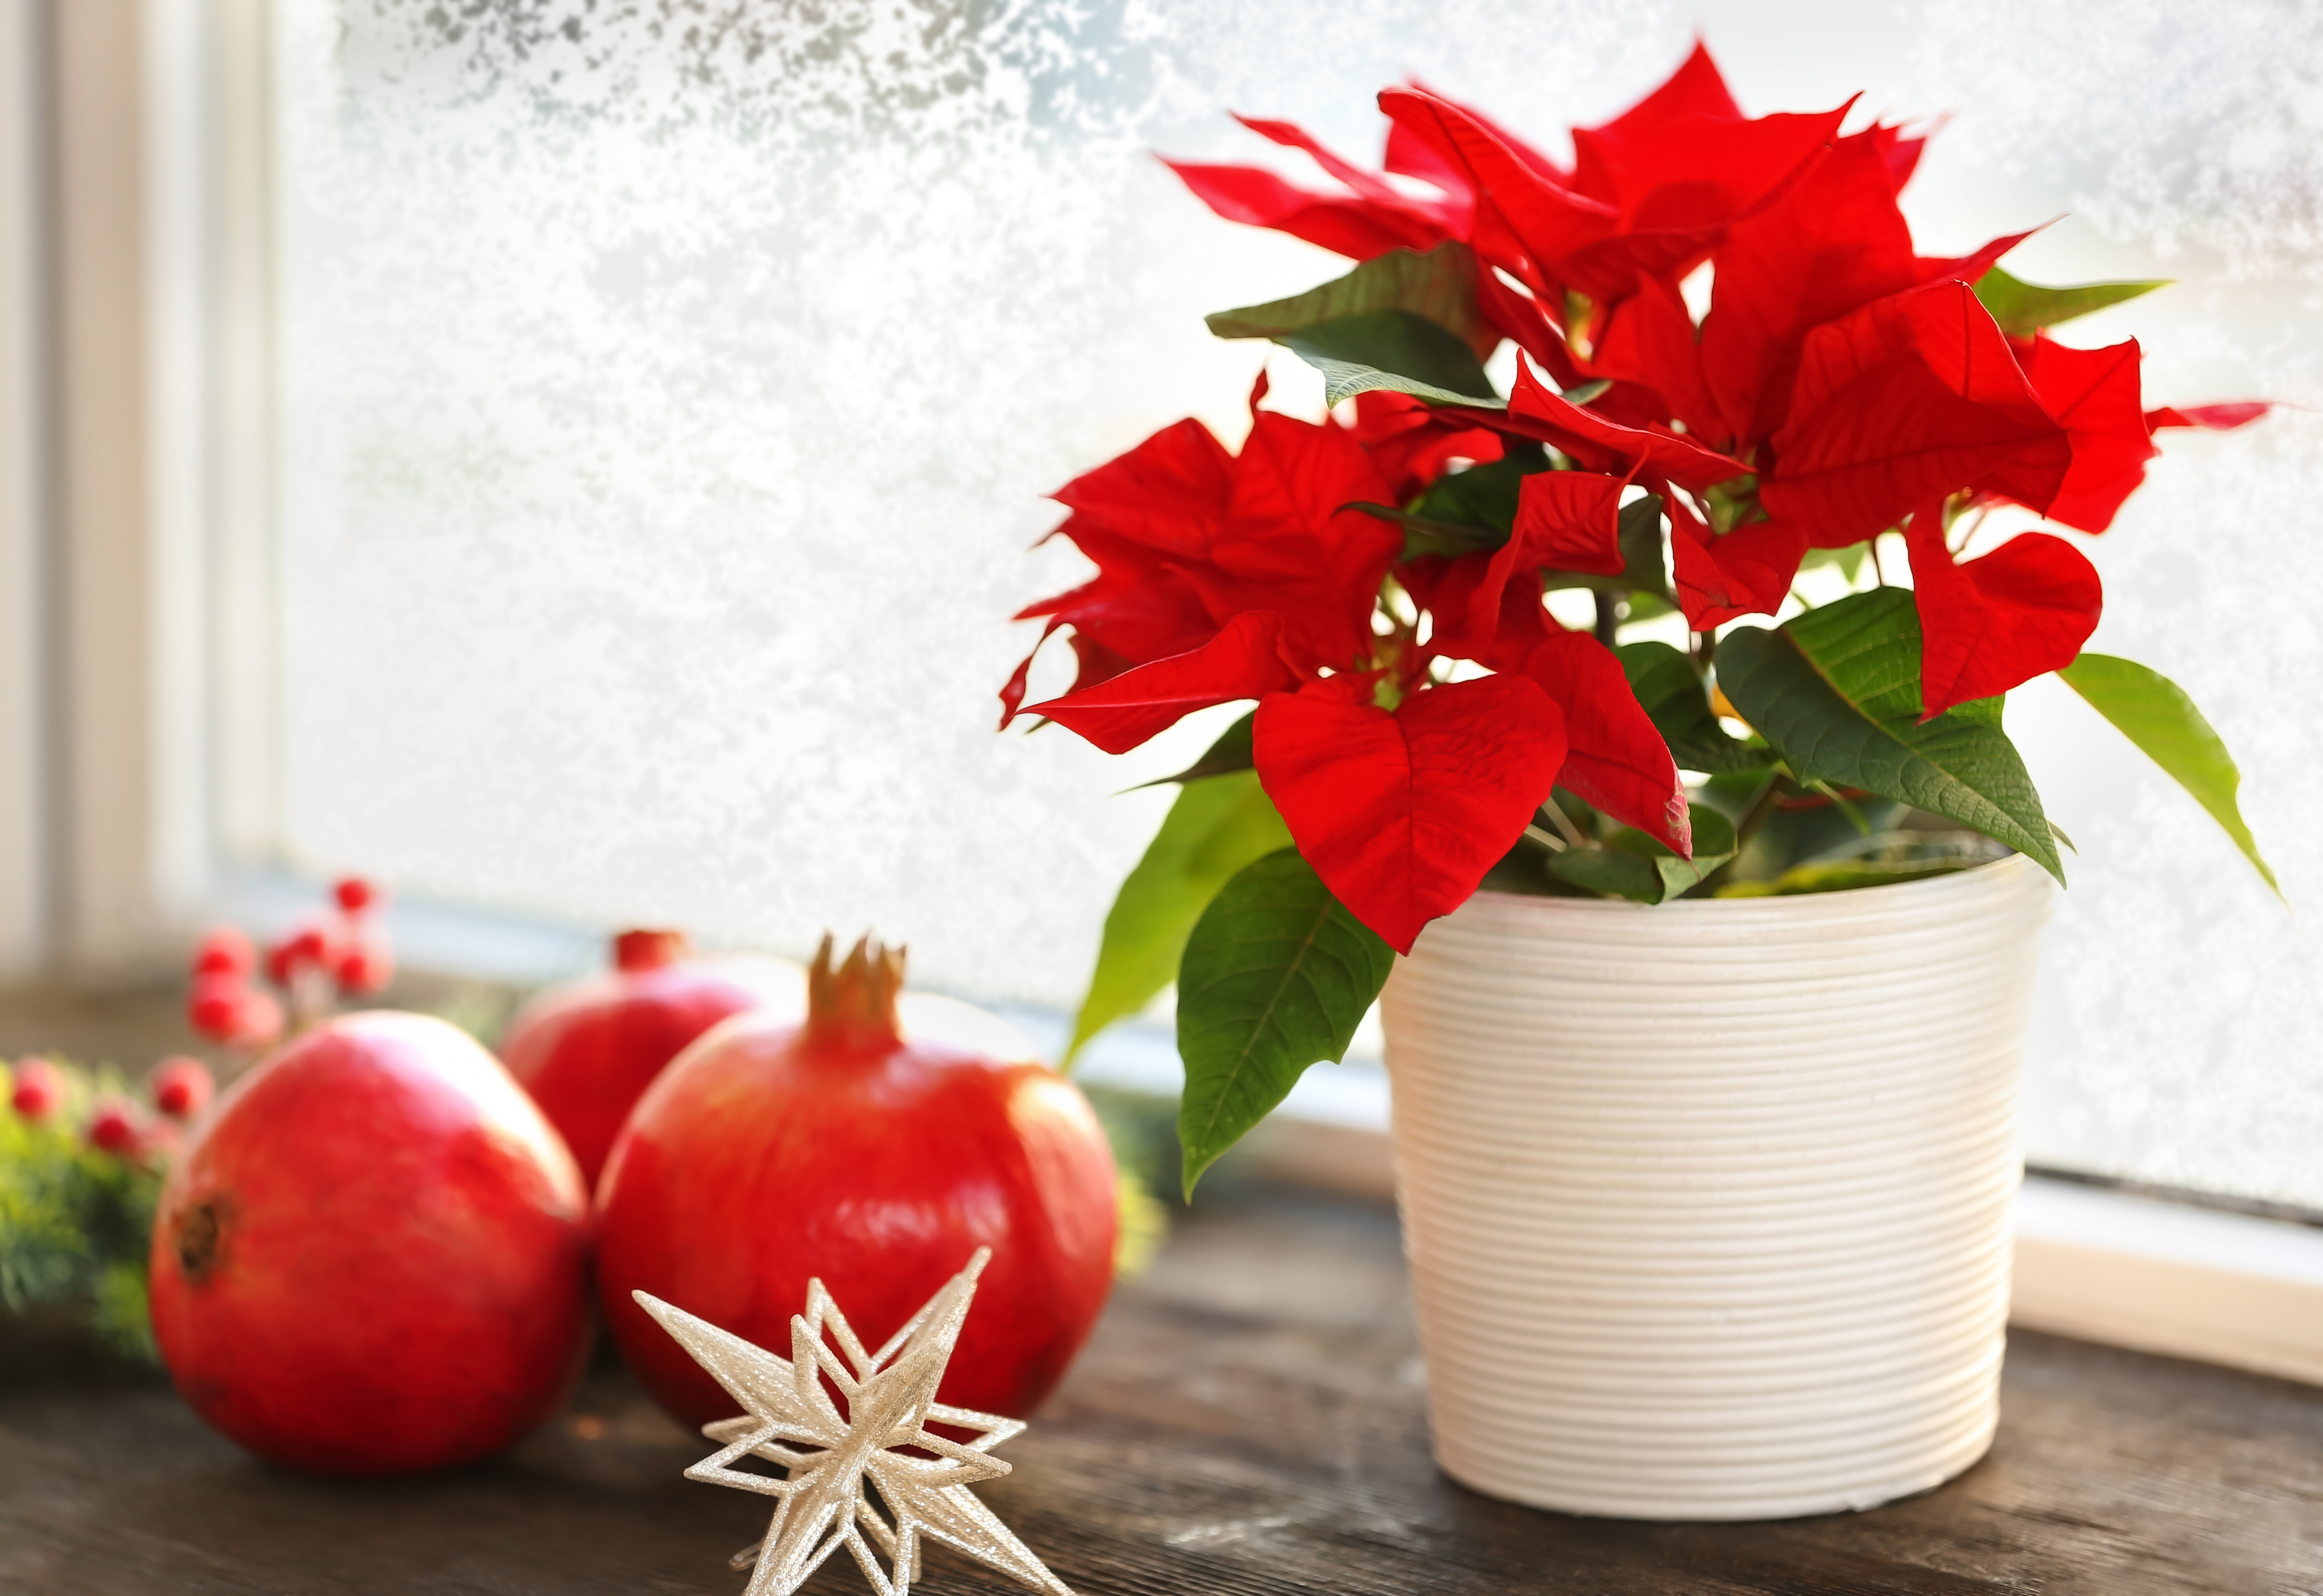 Poinsettia is poisonous to dogs